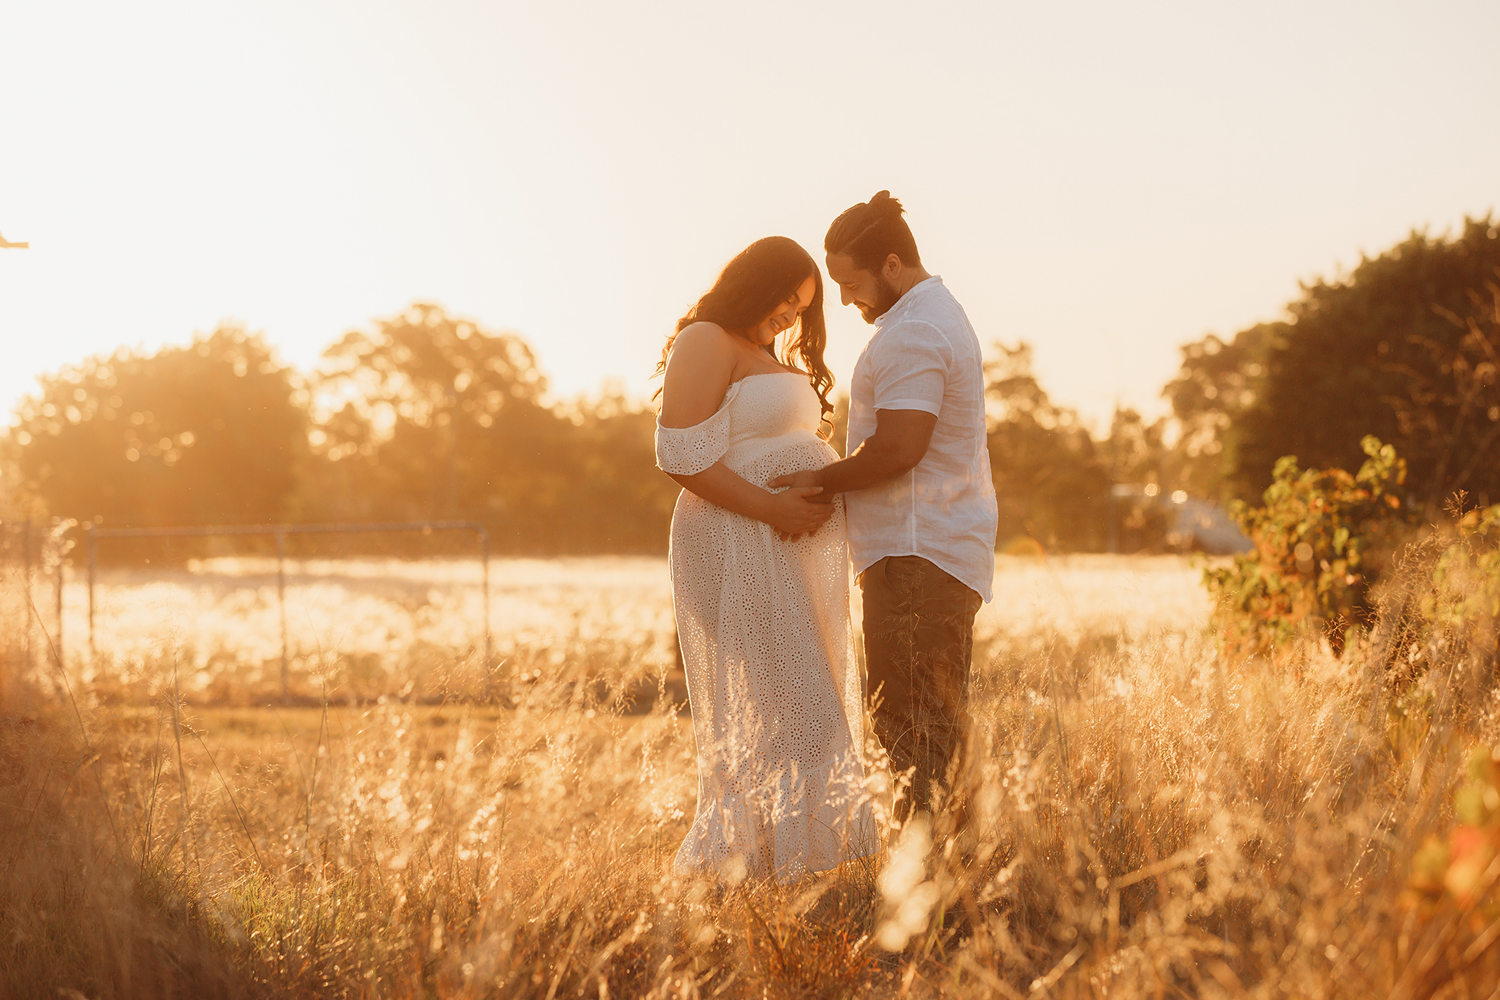 Maternity & Brand New Combined - 2 x SessionsIn-home or on Location Photoshoots (does not include Raeburn Orchards Sessions)50 Images from both your Maternity Shoot & Brand New SessionsKeepsake Memory Gift Box & USB (Prints Additional)$999